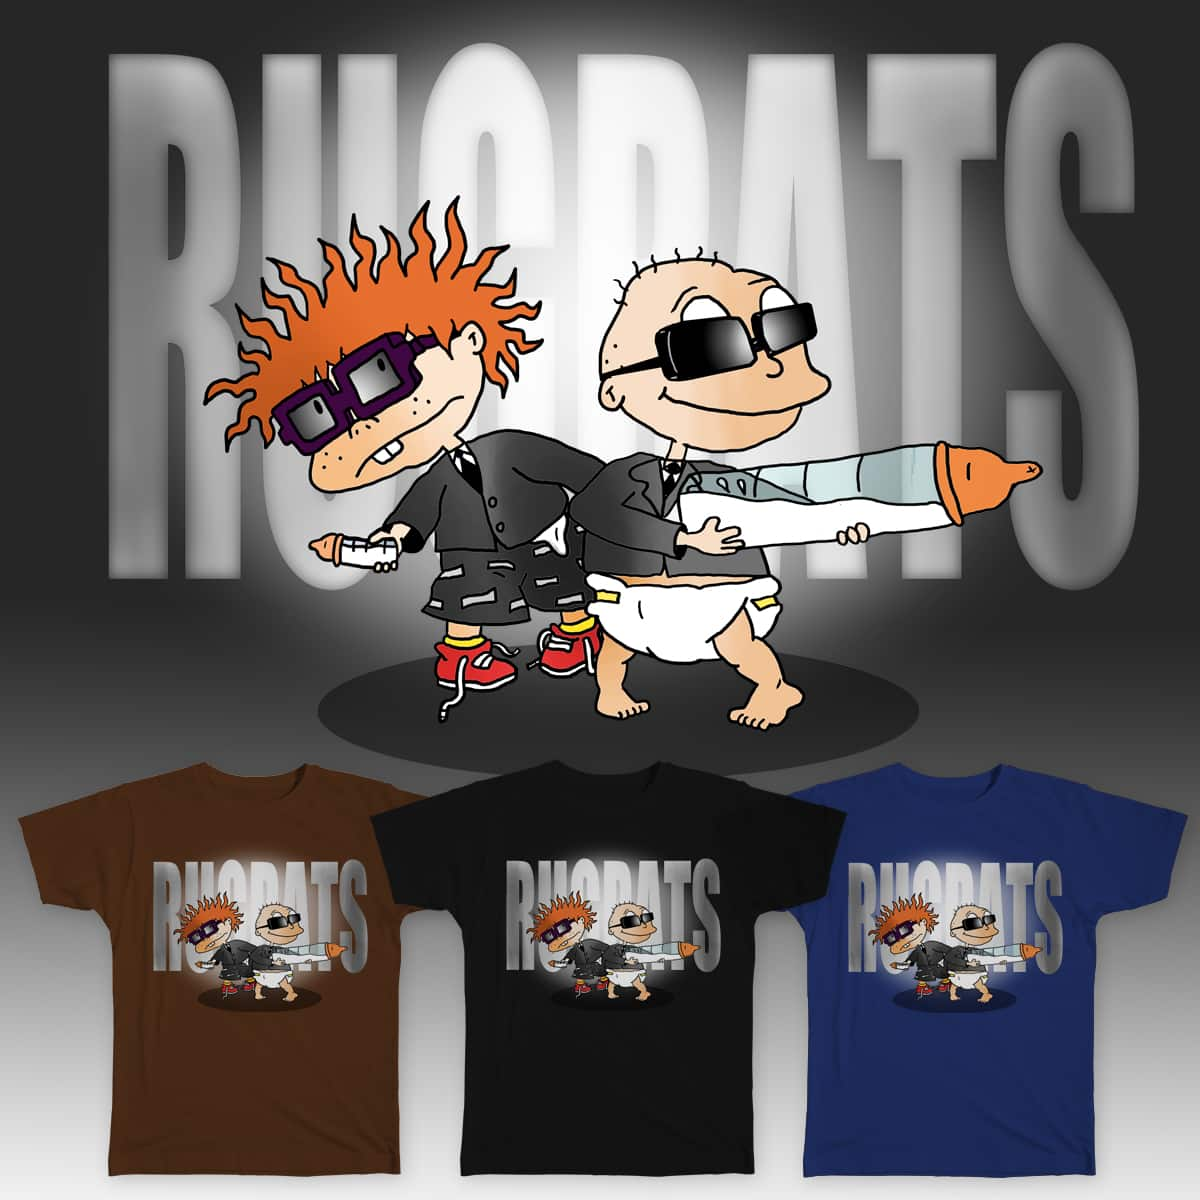 Rugrats In Black. by Nathan GW on Threadless